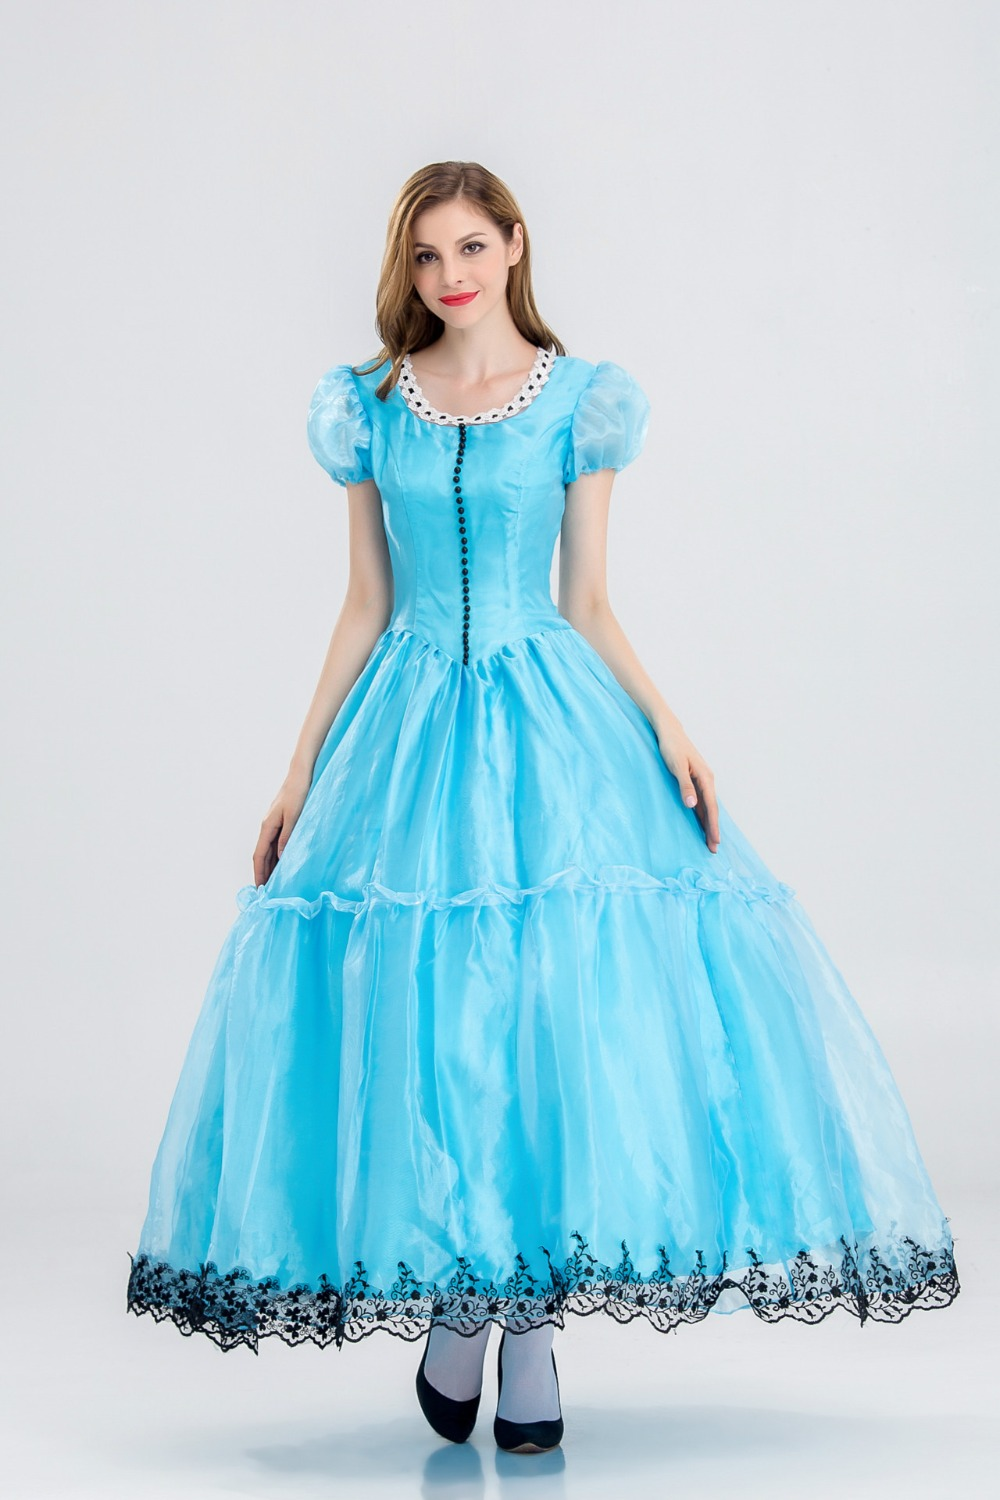 New Halloween fantasy fairyland blue fairy tale princess queen costume costume-in Scary Costumes from Novelty u0026 Special Use on Aliexpress.com | Alibaba ...  sc 1 st  AliExpress.com & New Halloween fantasy fairyland blue fairy tale princess queen ...